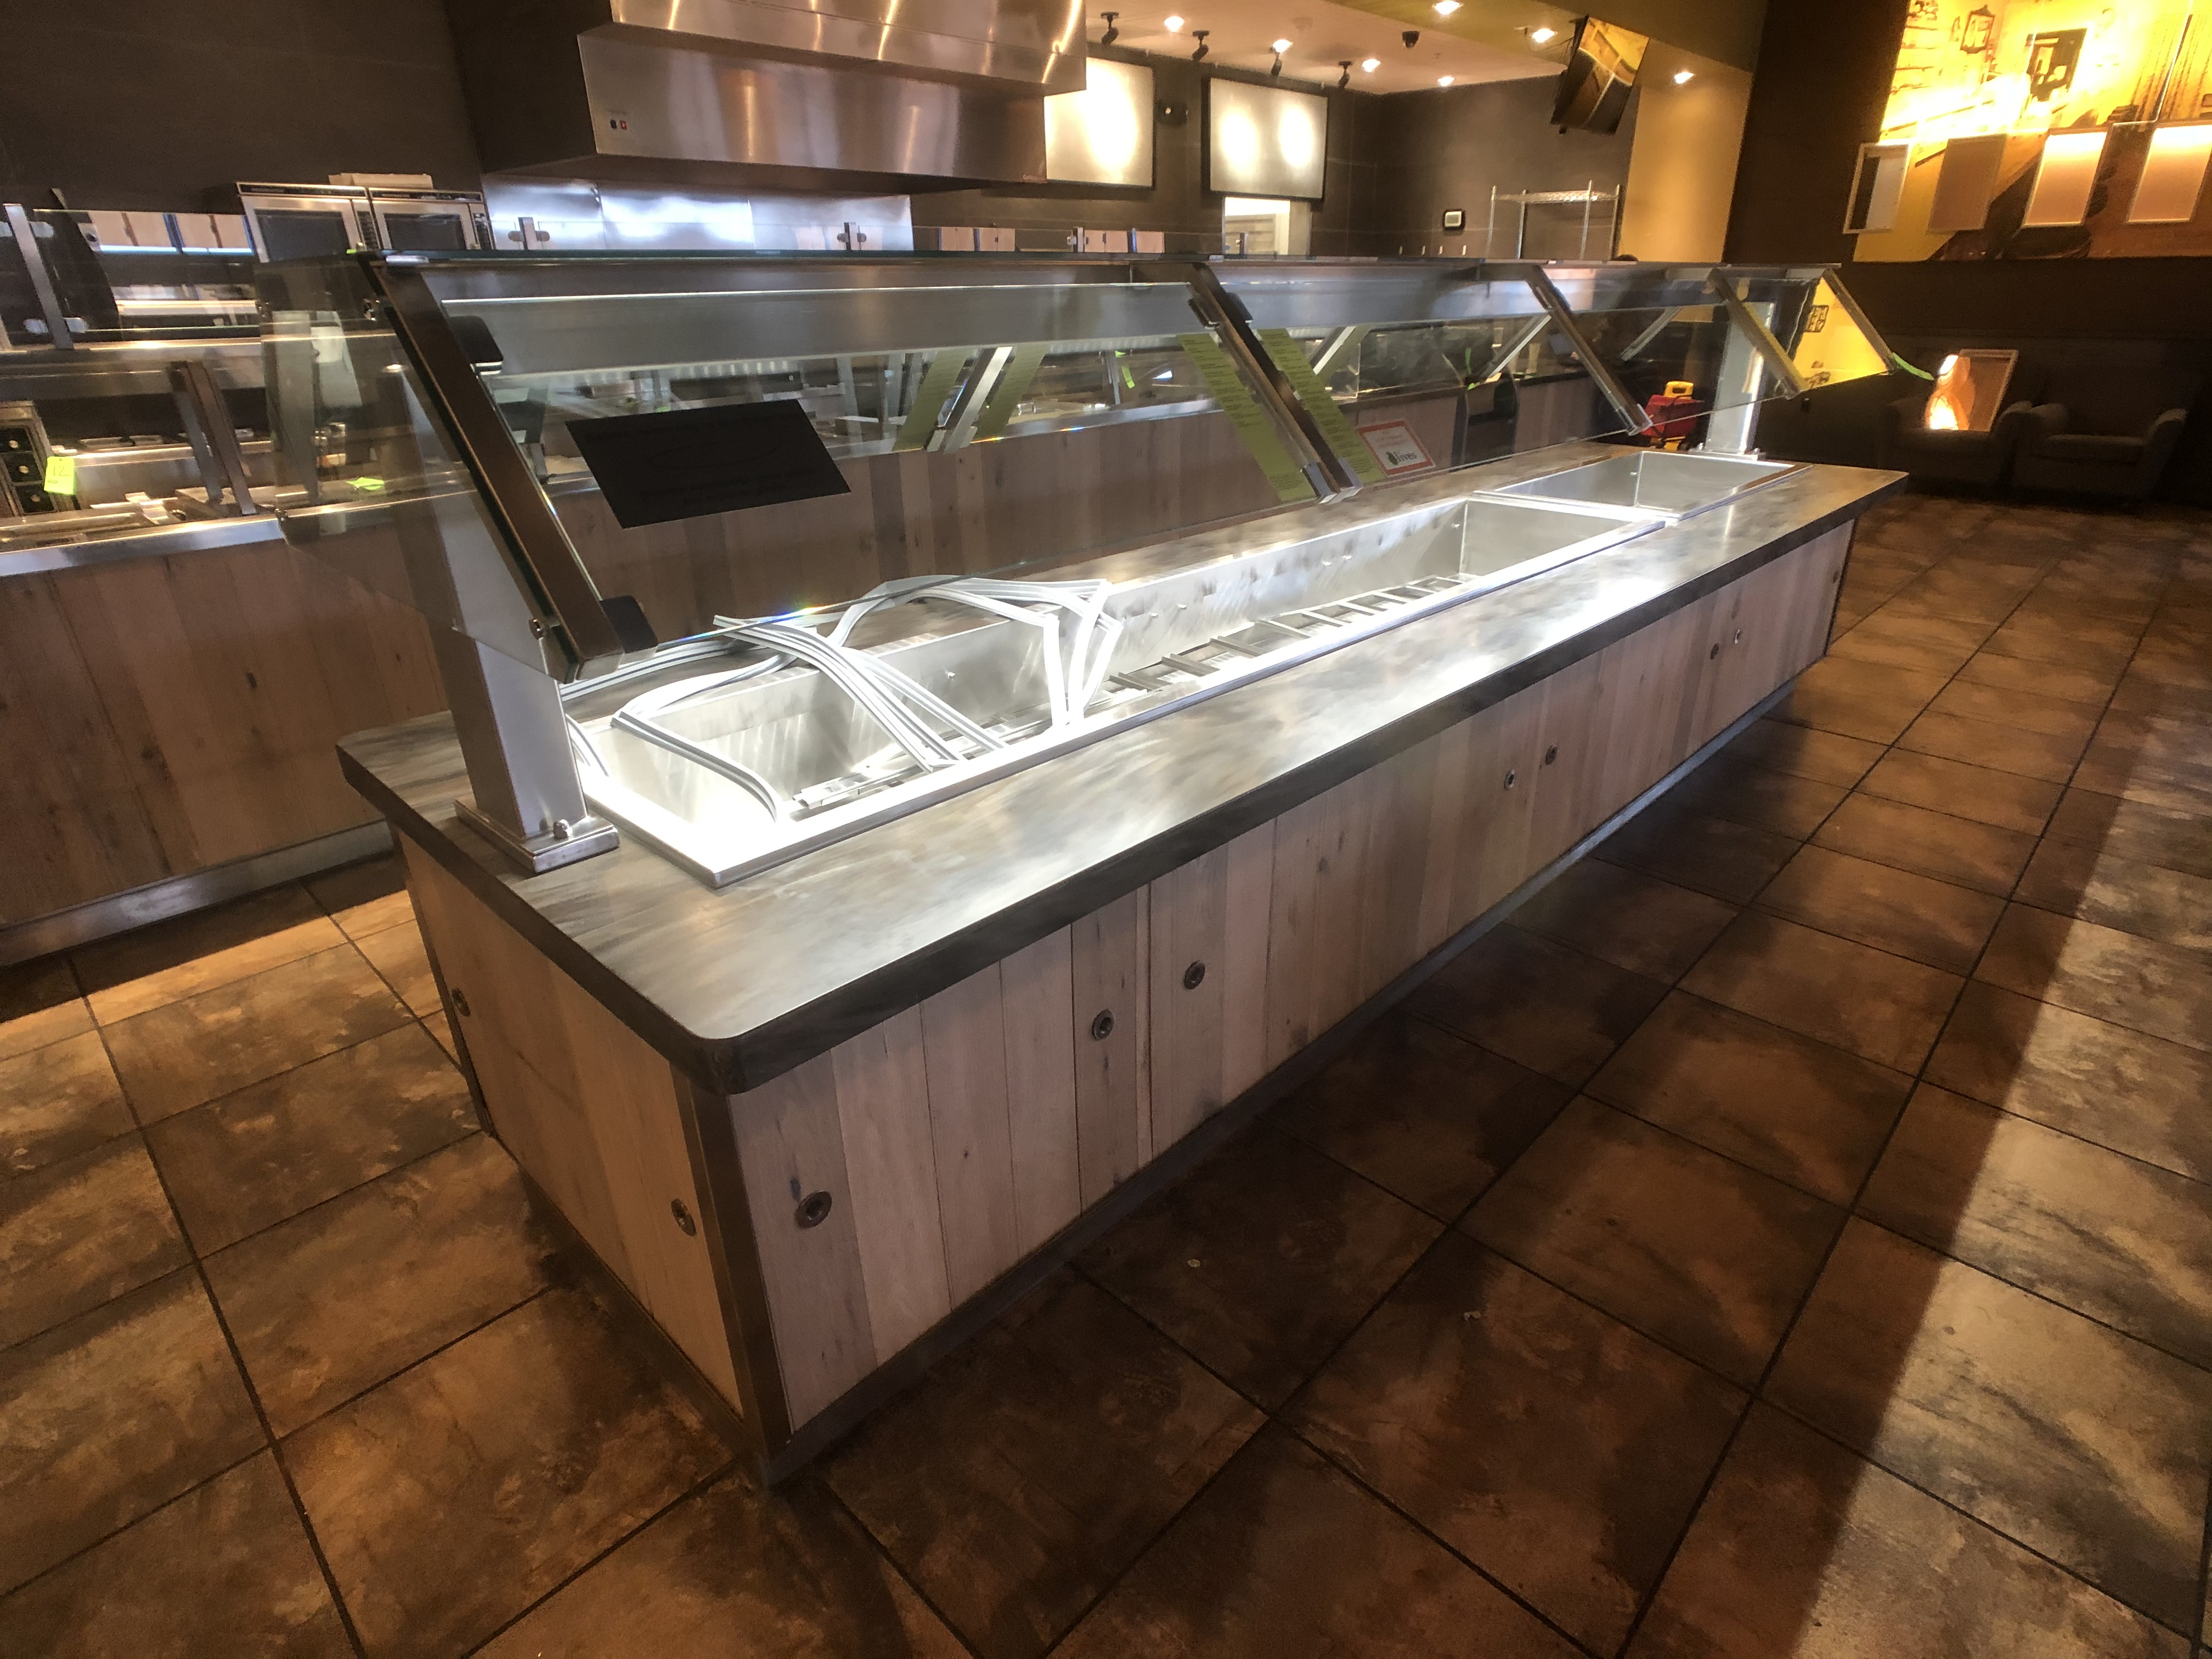 Randell Approx. 15' L x 4' W Refrigerated Buffet Table with Overhead Light, Work-Top Refrigerator - Image 4 of 6